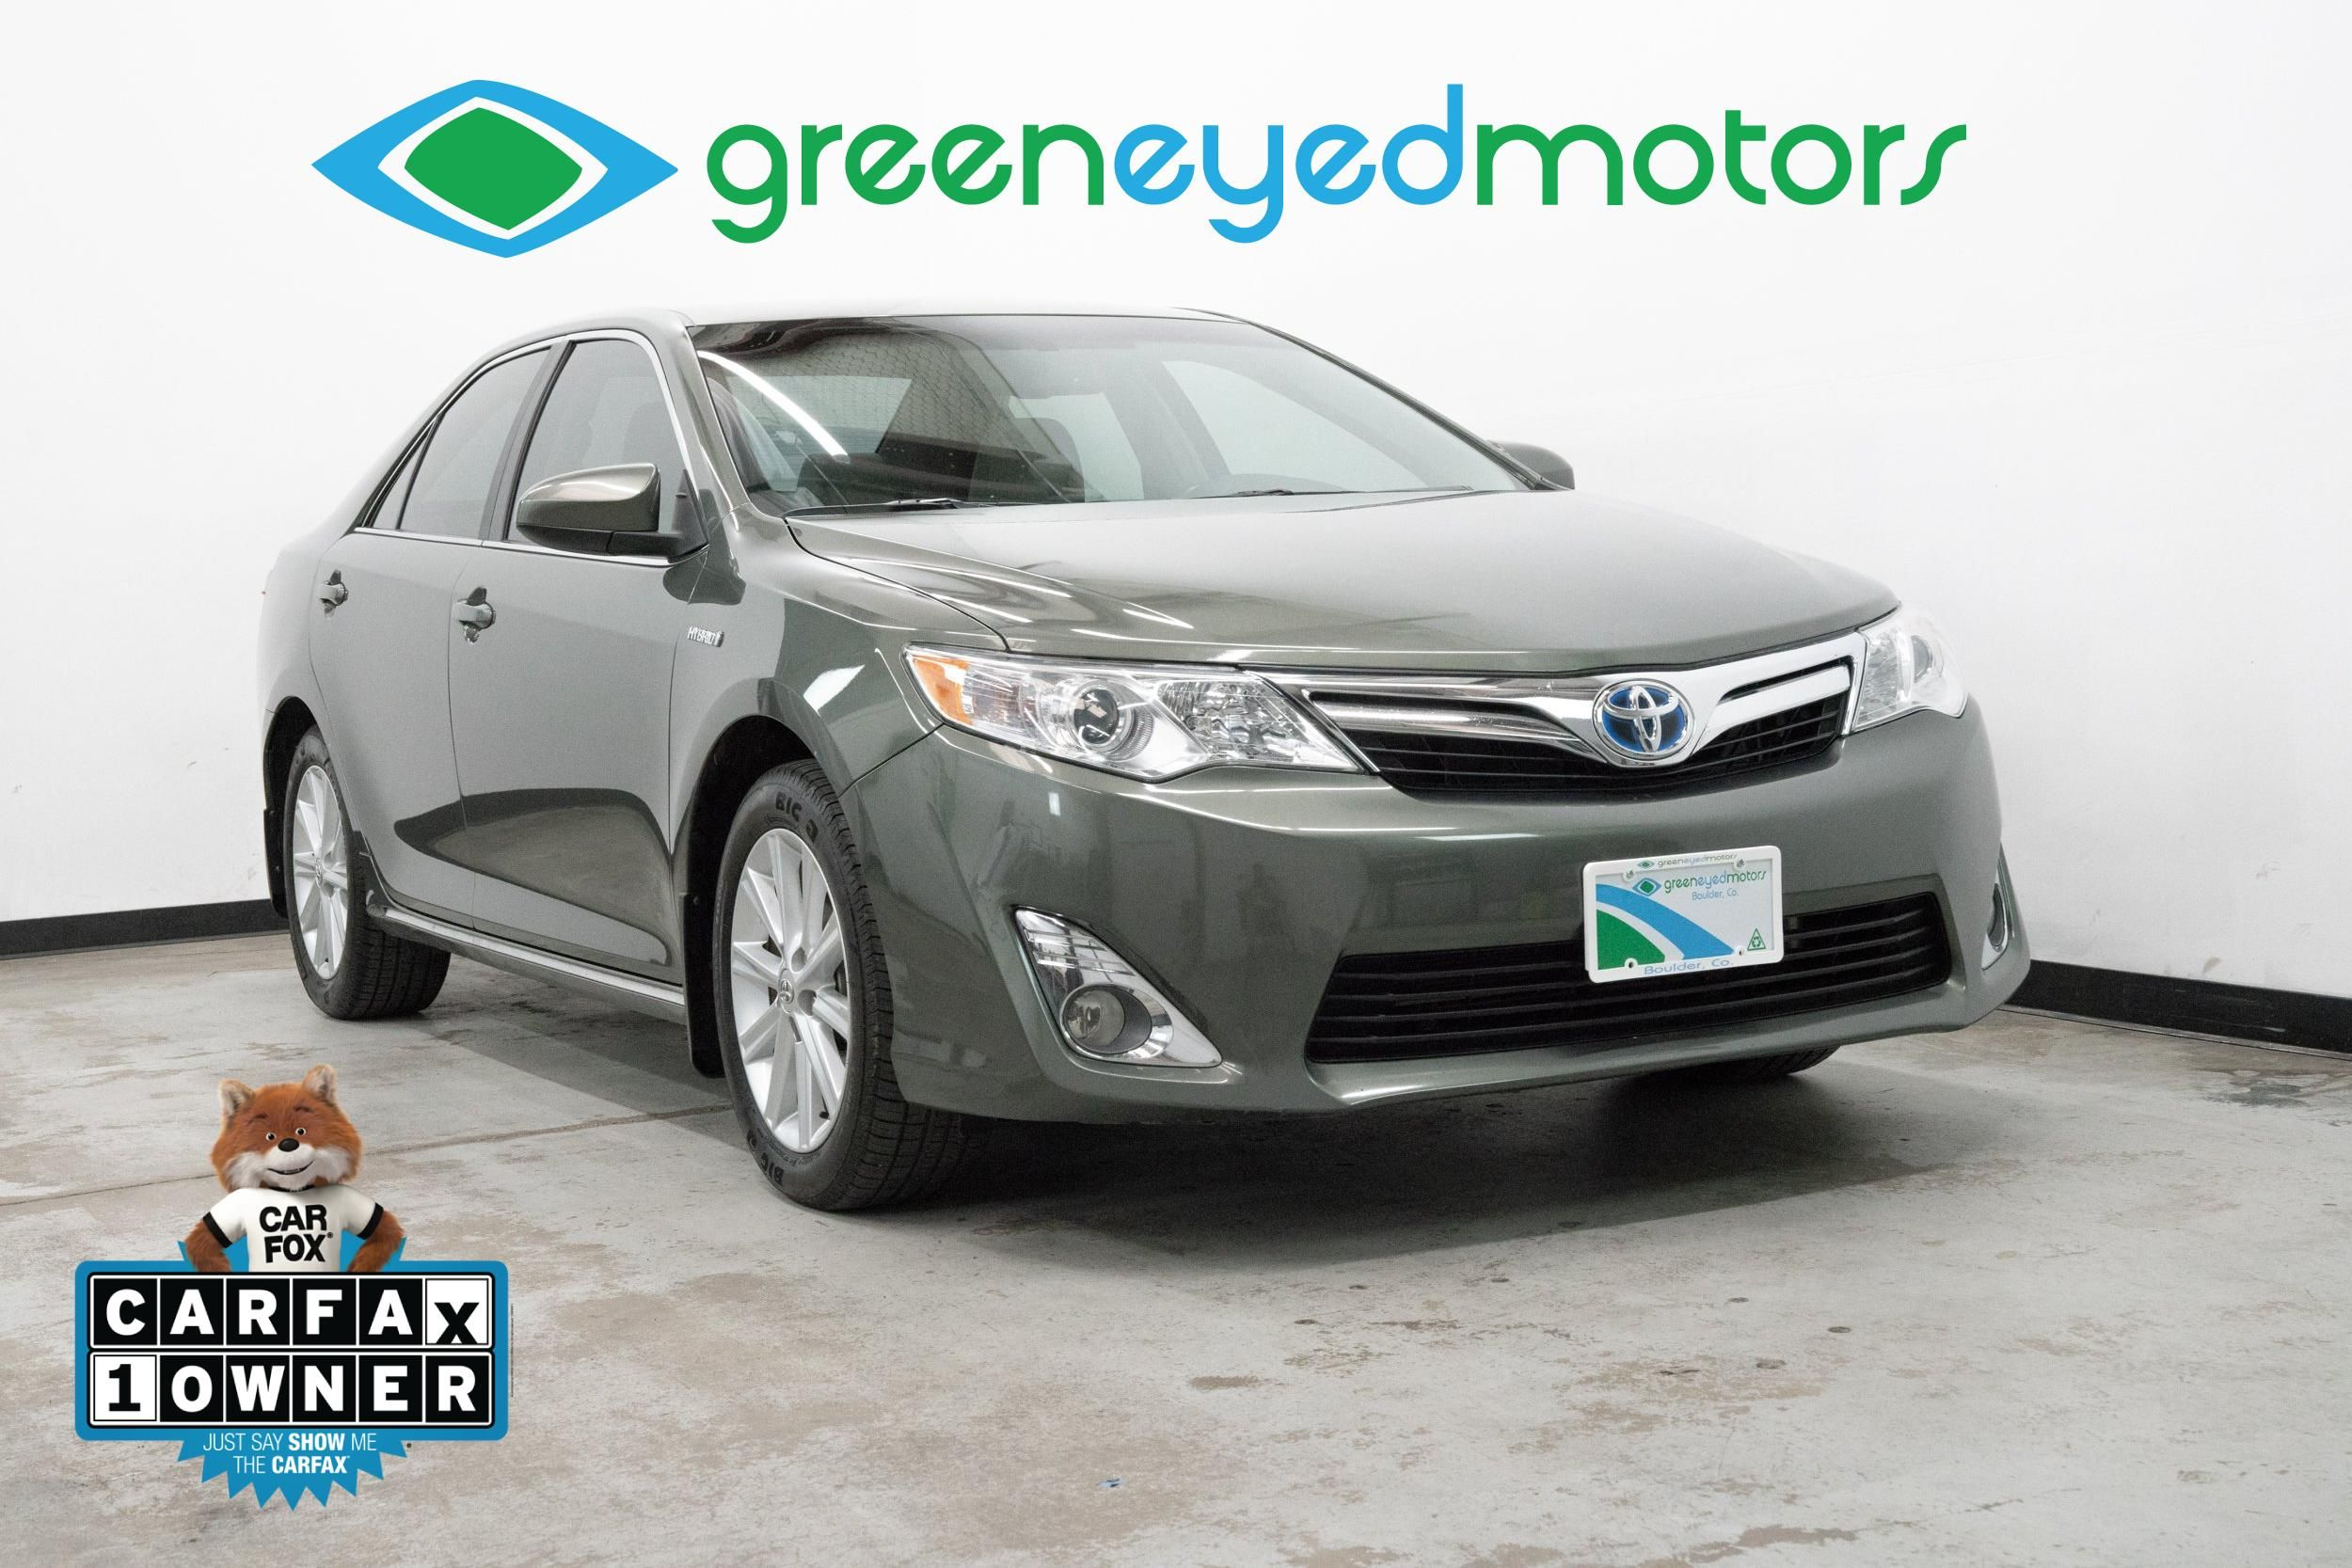 2012 Toyota Camry Hybrid XLE. Hybrid   Sunroof   Backup Camera   Bluetooth    40 MPG!